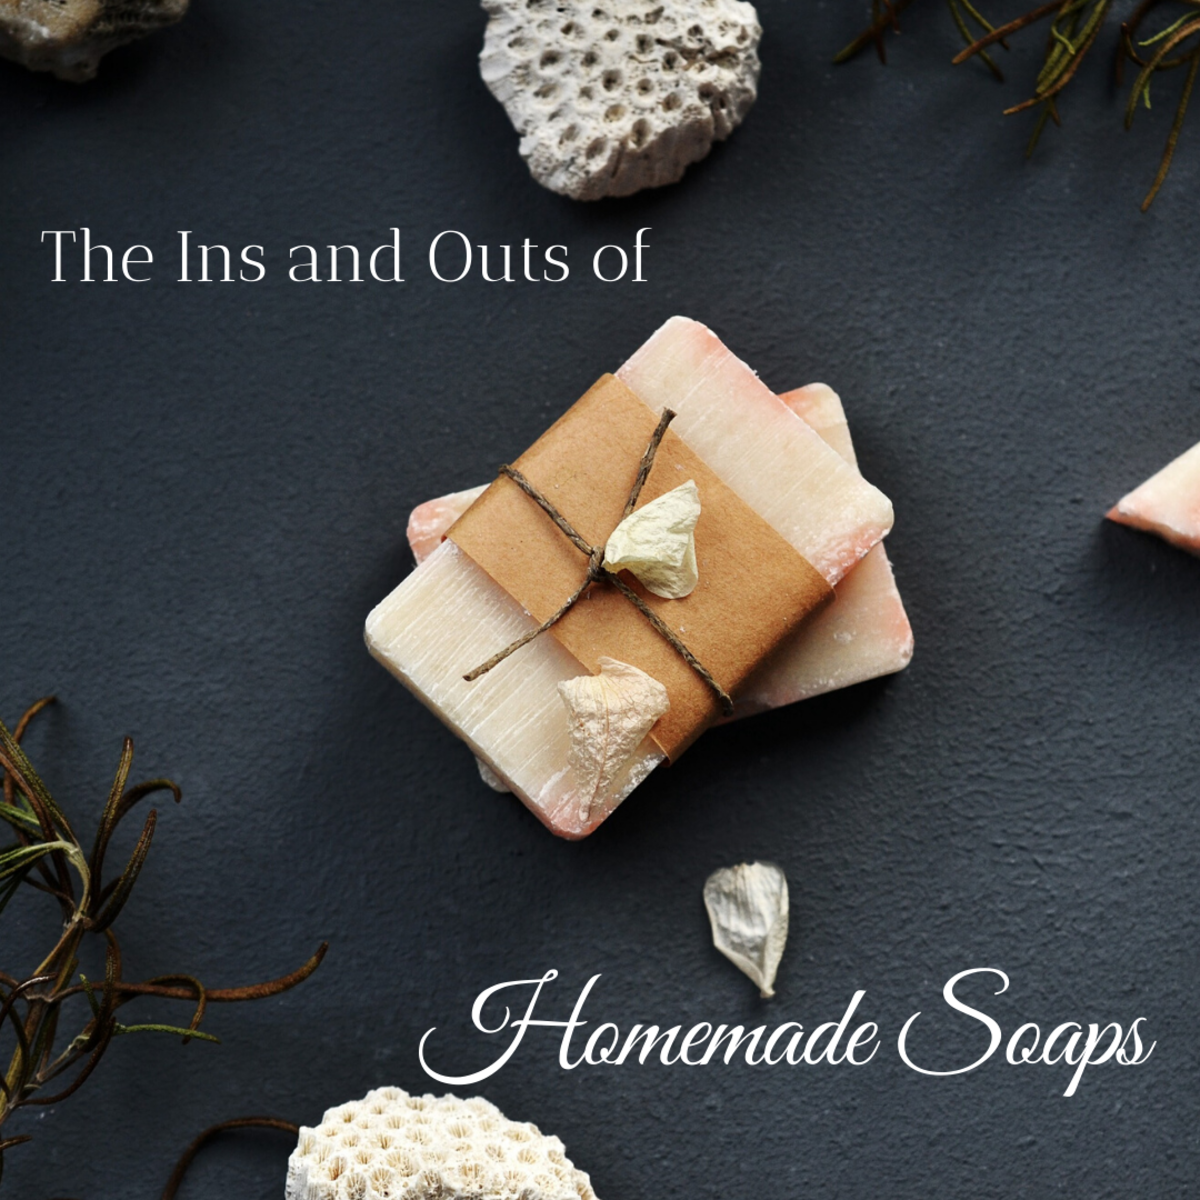 This article will break down what to look for in homemade soaps, how they're made, and what the best ingredients are.